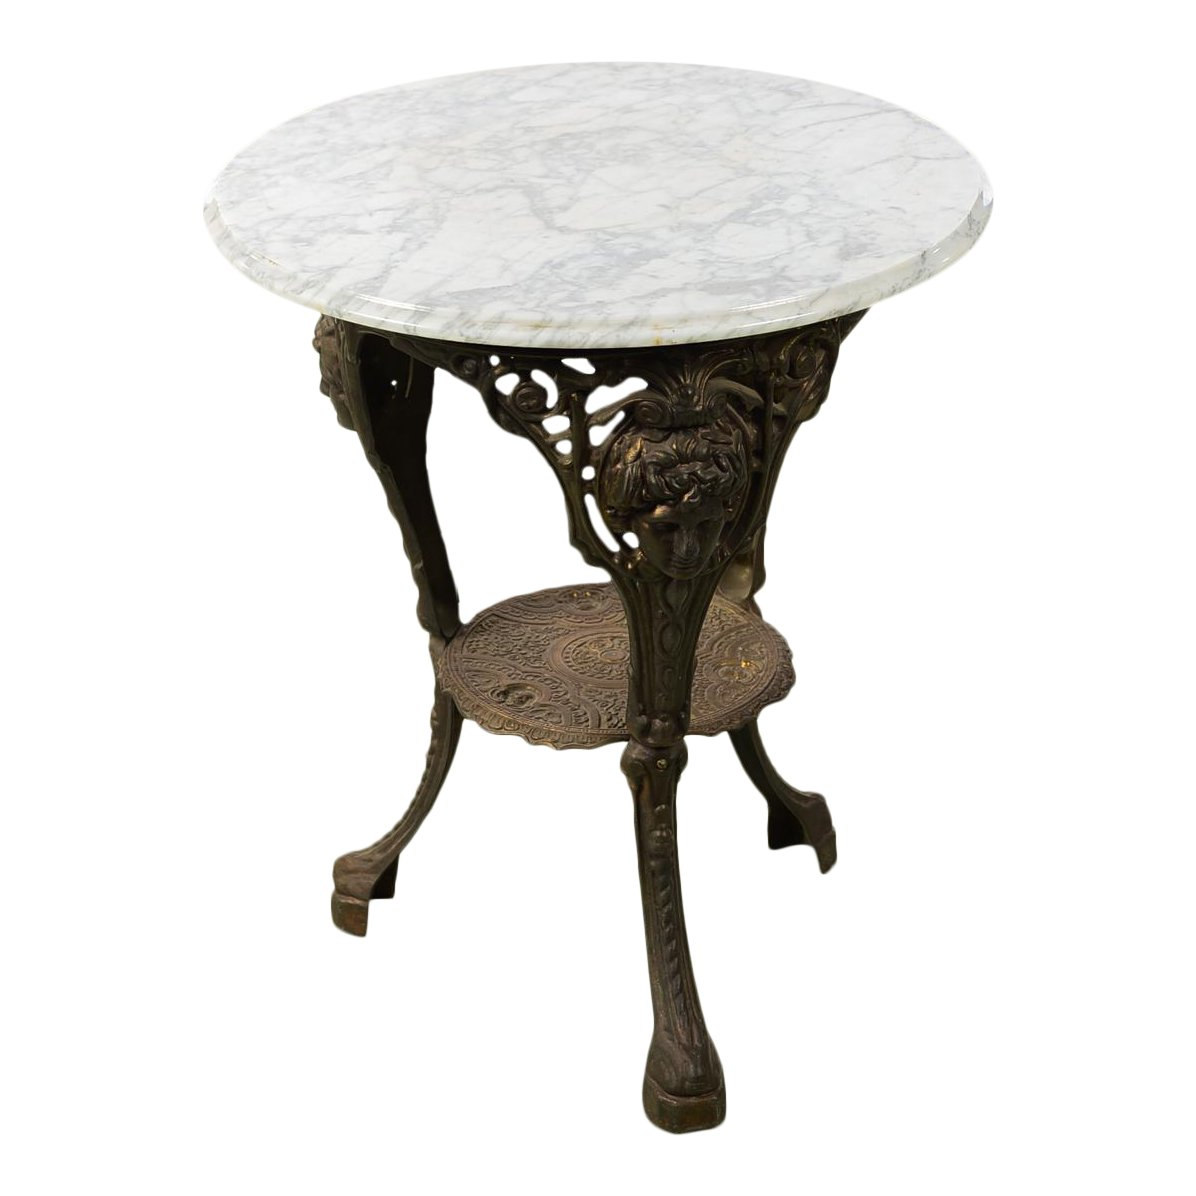 antique english cast iron pub bistro table round marble top wround accent half kitchen target makeup vanity shaped side retro bedroom chair pier one console patio stand home decor